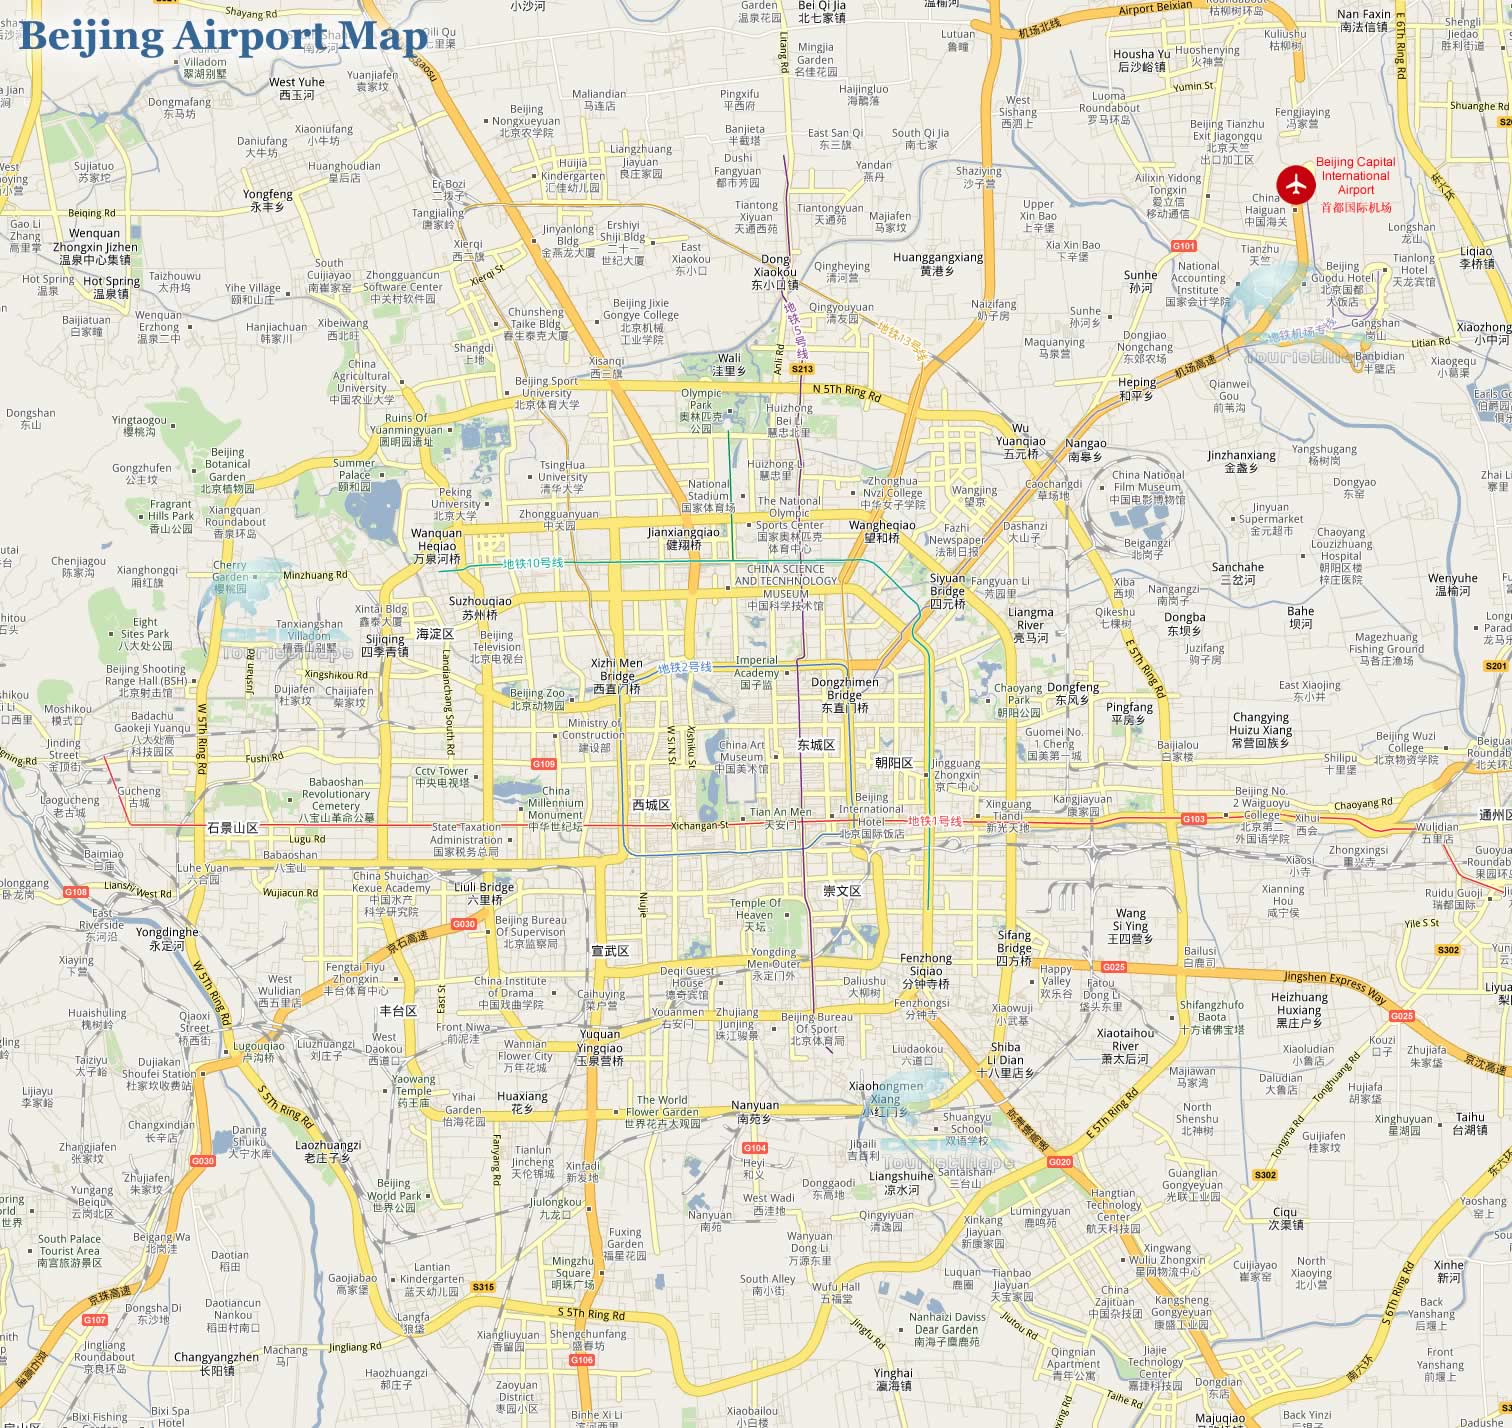 Location map of beijing capital international airport beijing airport location map publicscrutiny Image collections